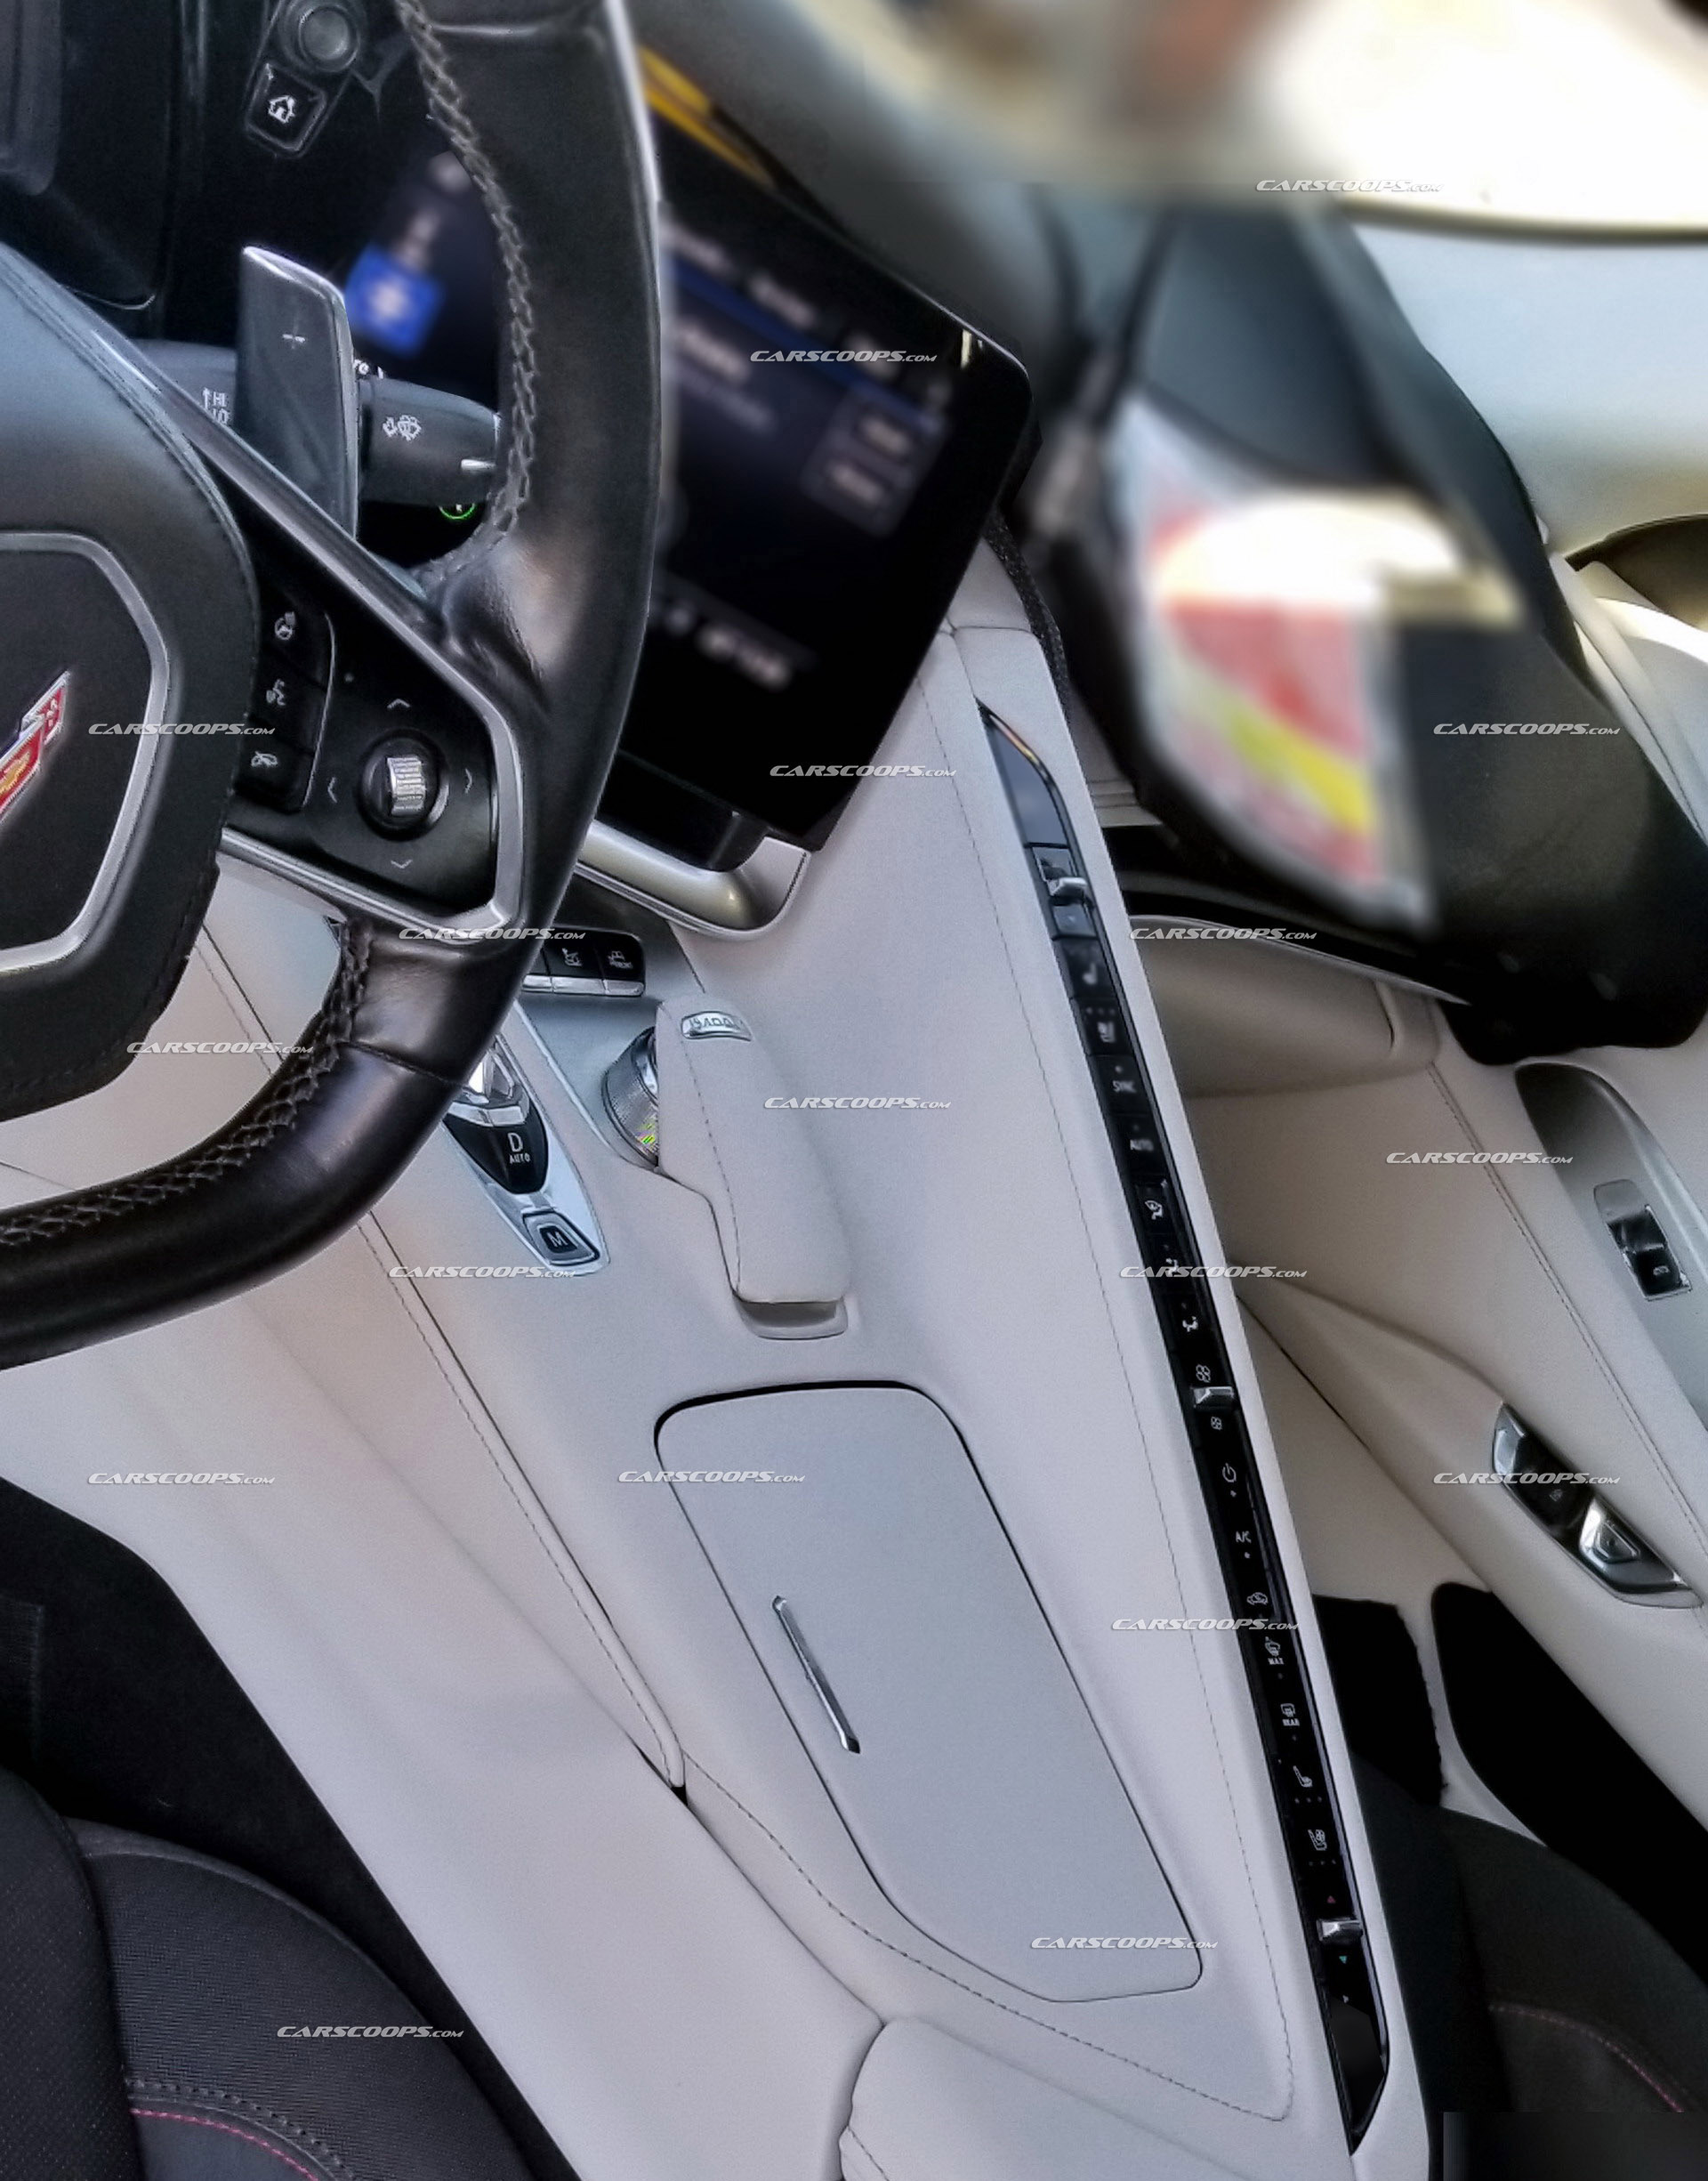 2020 Corvette C8 We Get Our First Peek Inside And It Looks Pretty